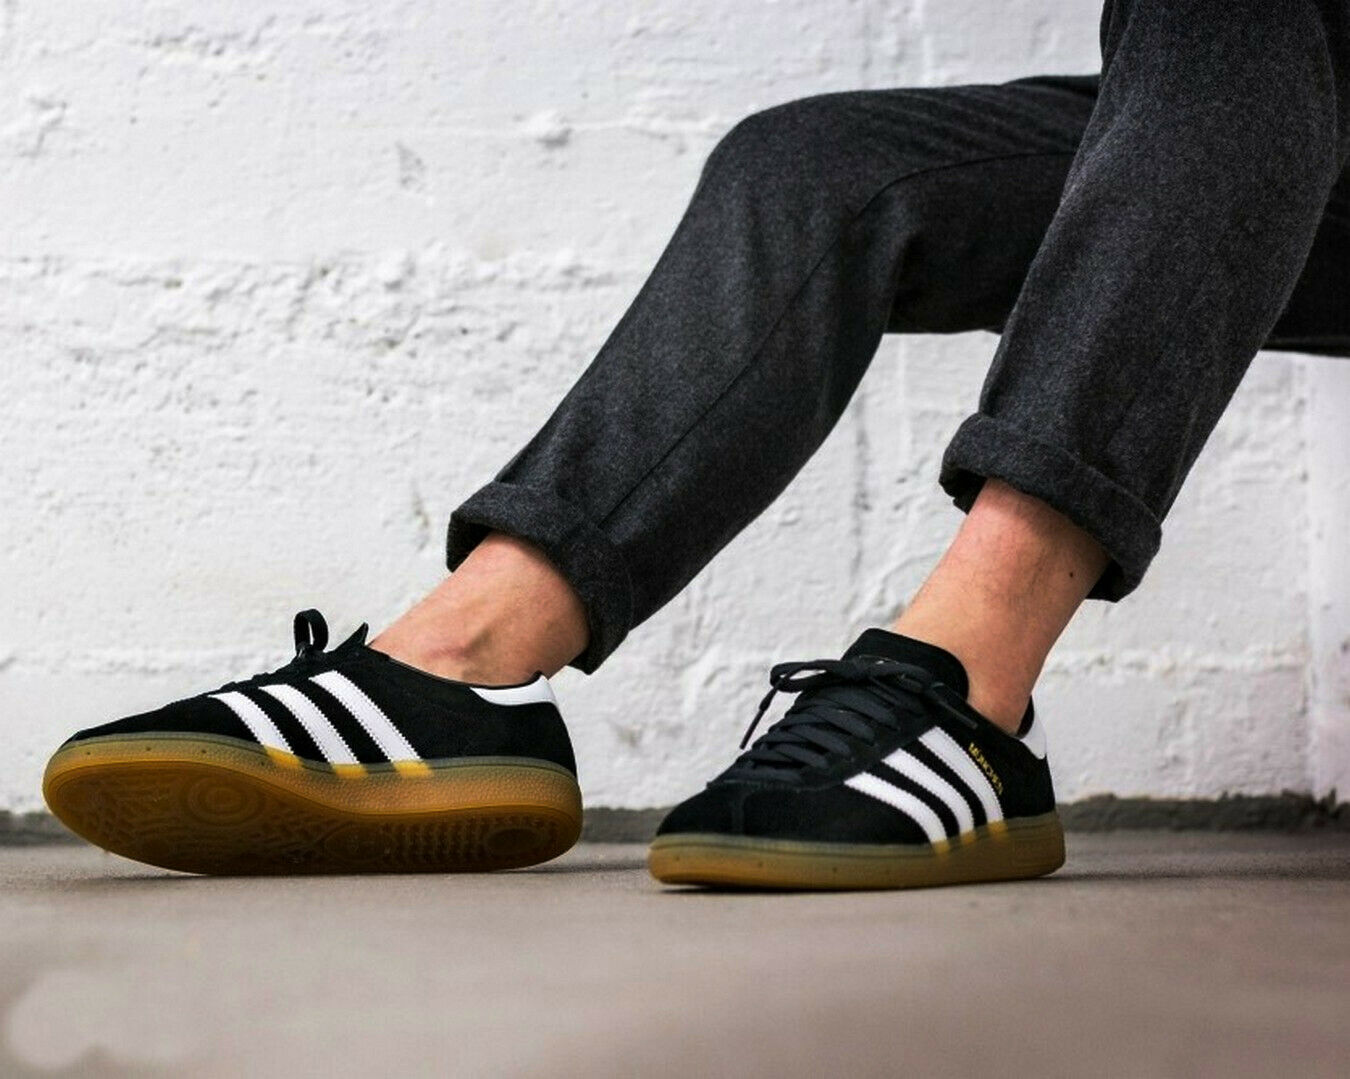 BNWB & AUTHENTIQUE Adidas Originals ® München Noir Blanc Daim paniers Taille UK 7